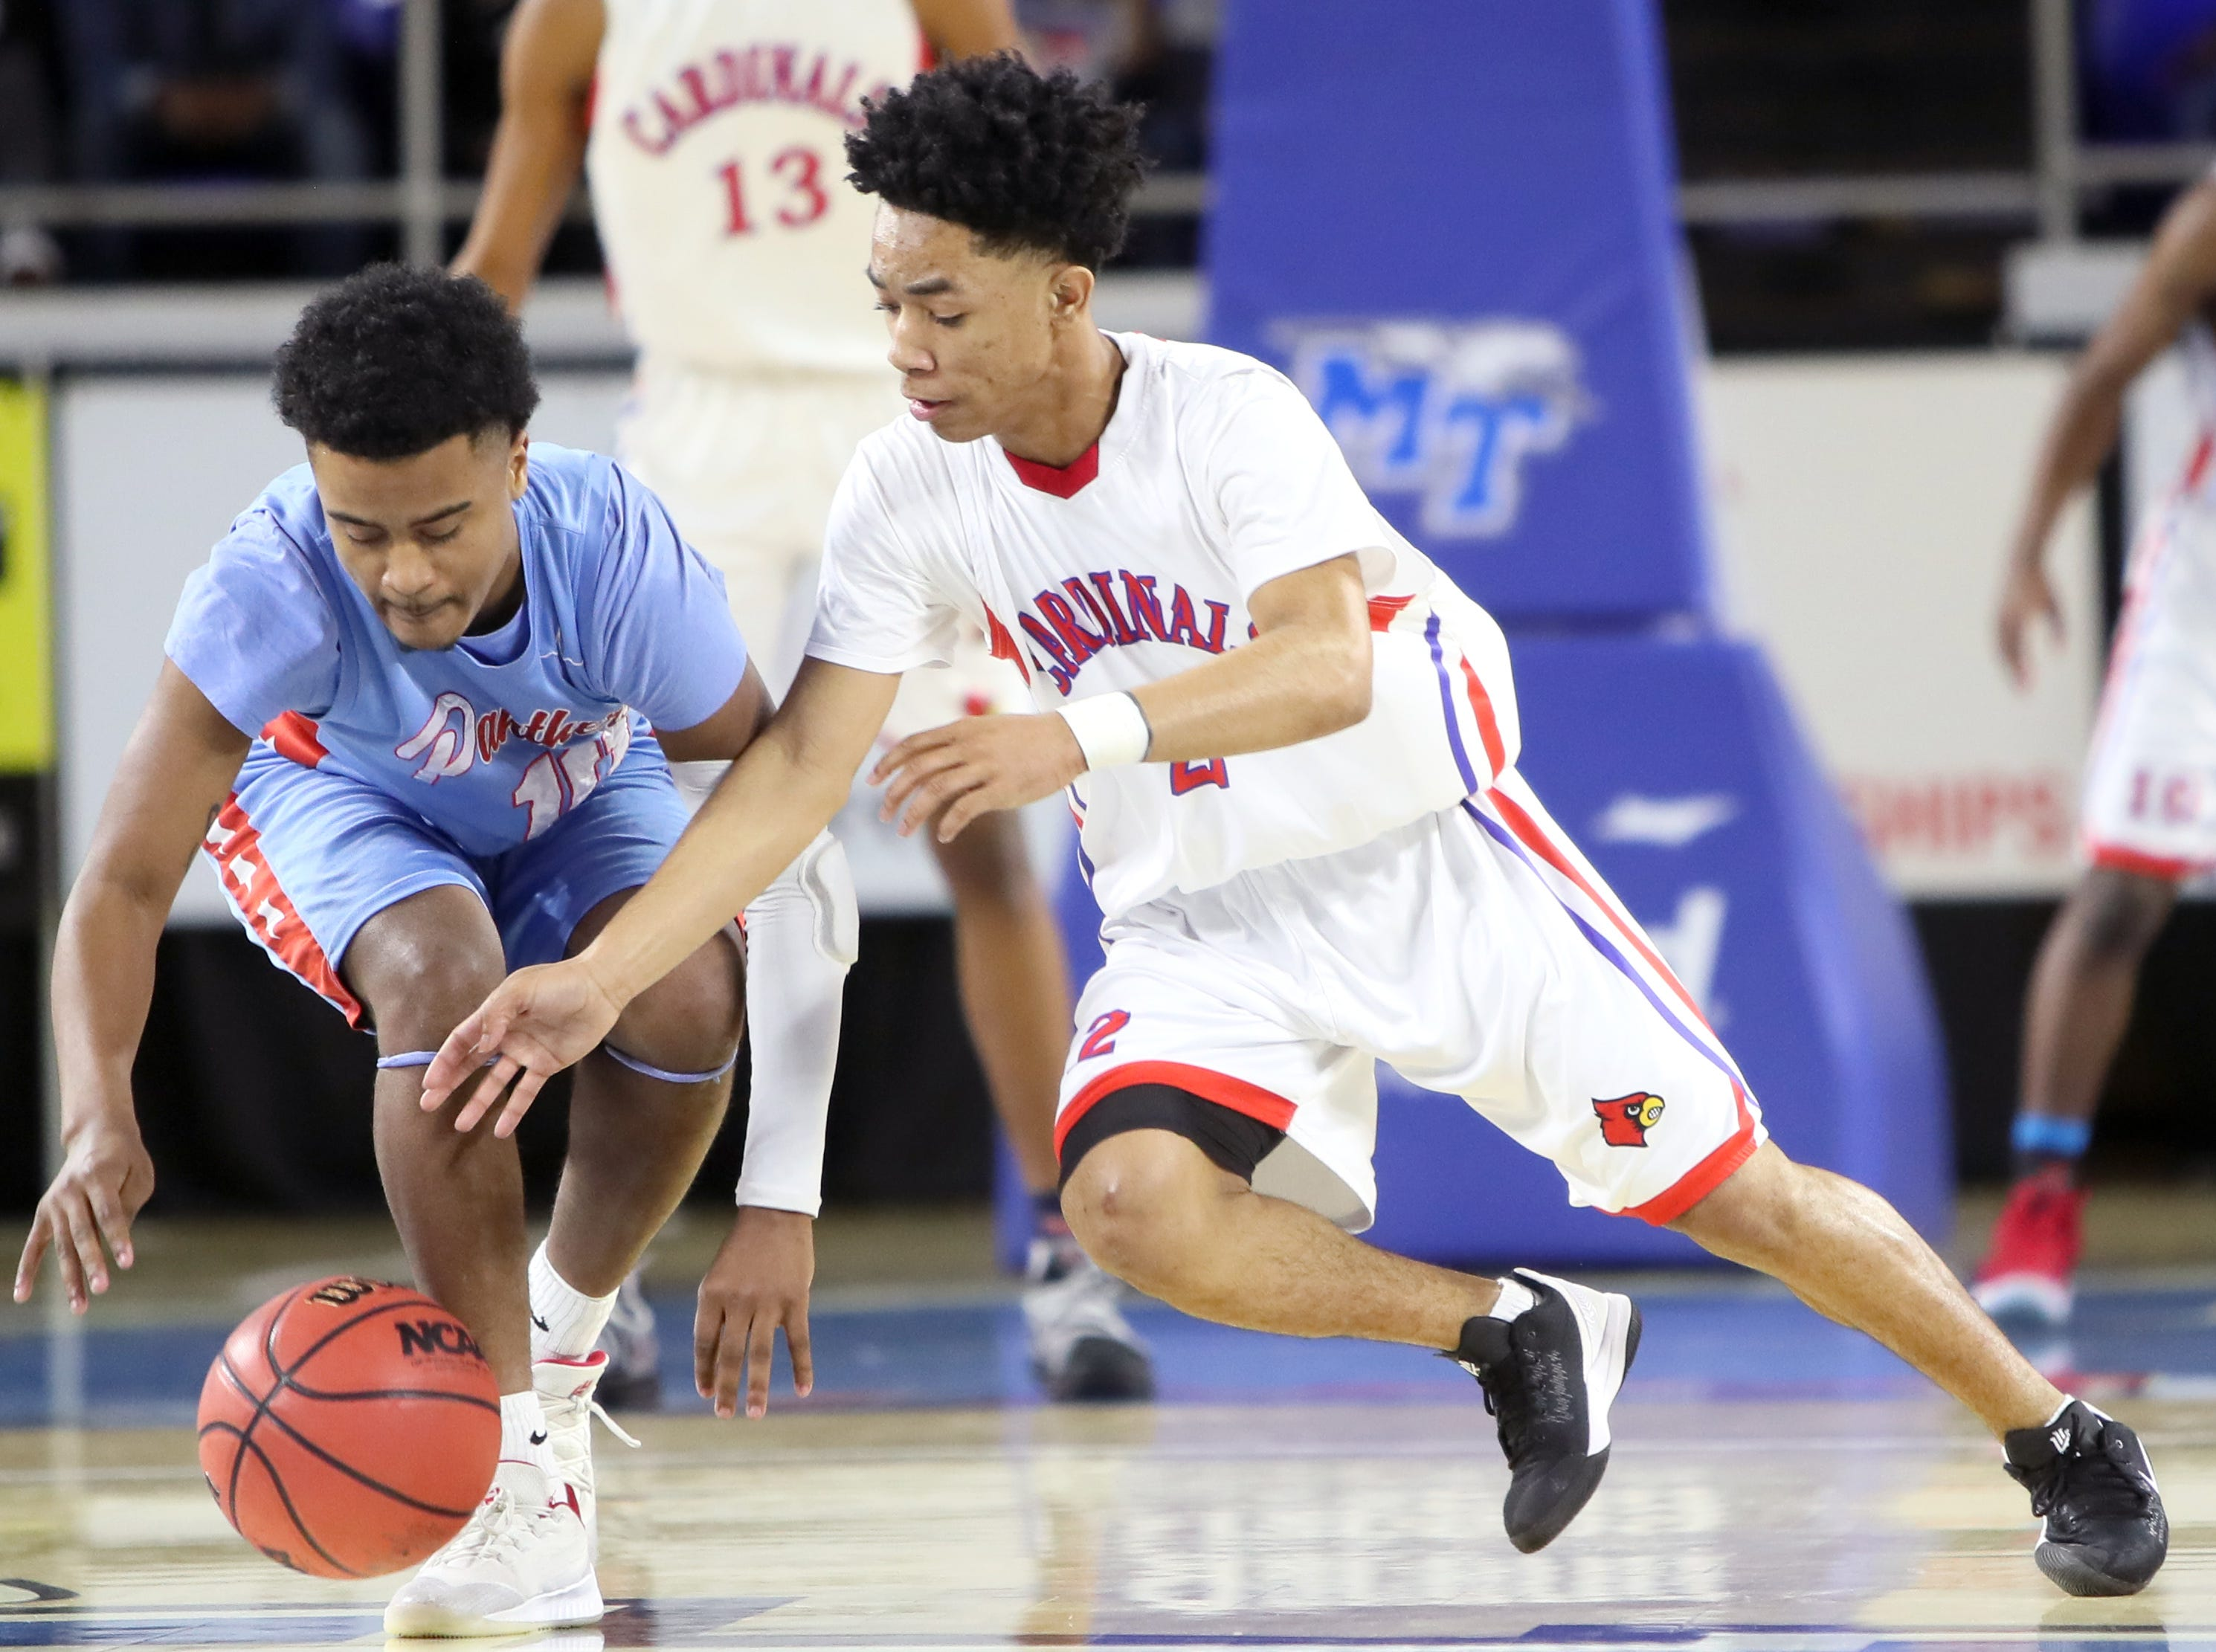 Wooddale's Kevin Brown tries to steal the ball from Brainerd's Kevin Halfacre during the Class AA boys basketball state semifinal at the Murphy Center in Murfreesboro, Tenn. on Thursday, March 14, 2019.